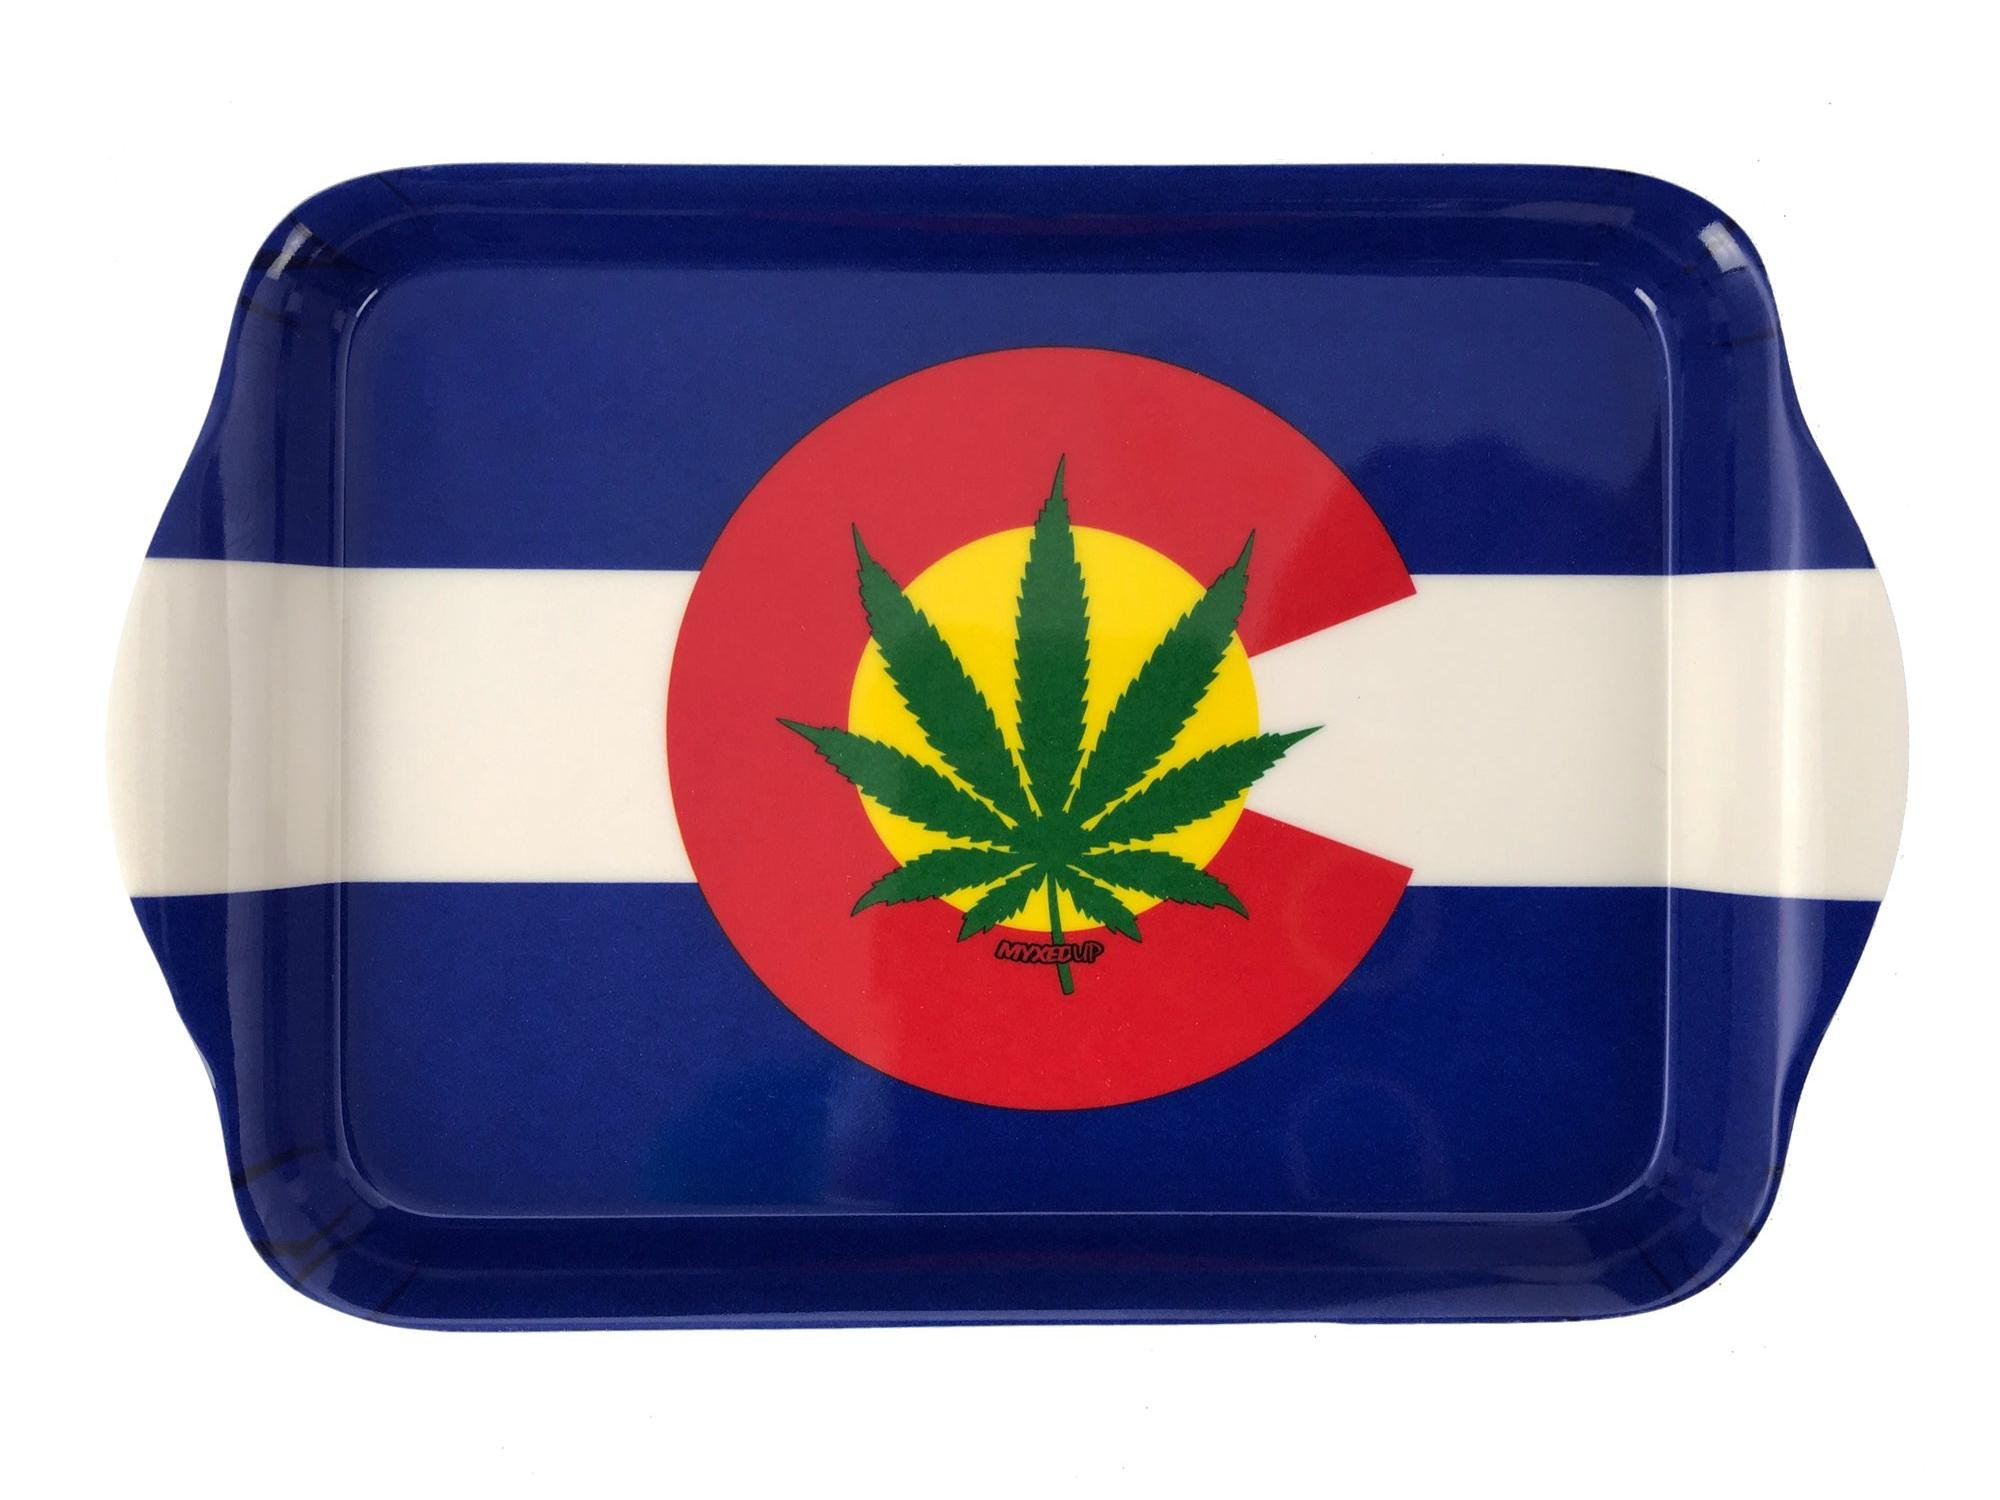 Colorado Flag Pot Leaf Myxed Up Tobacco Rolling Tray (Large)